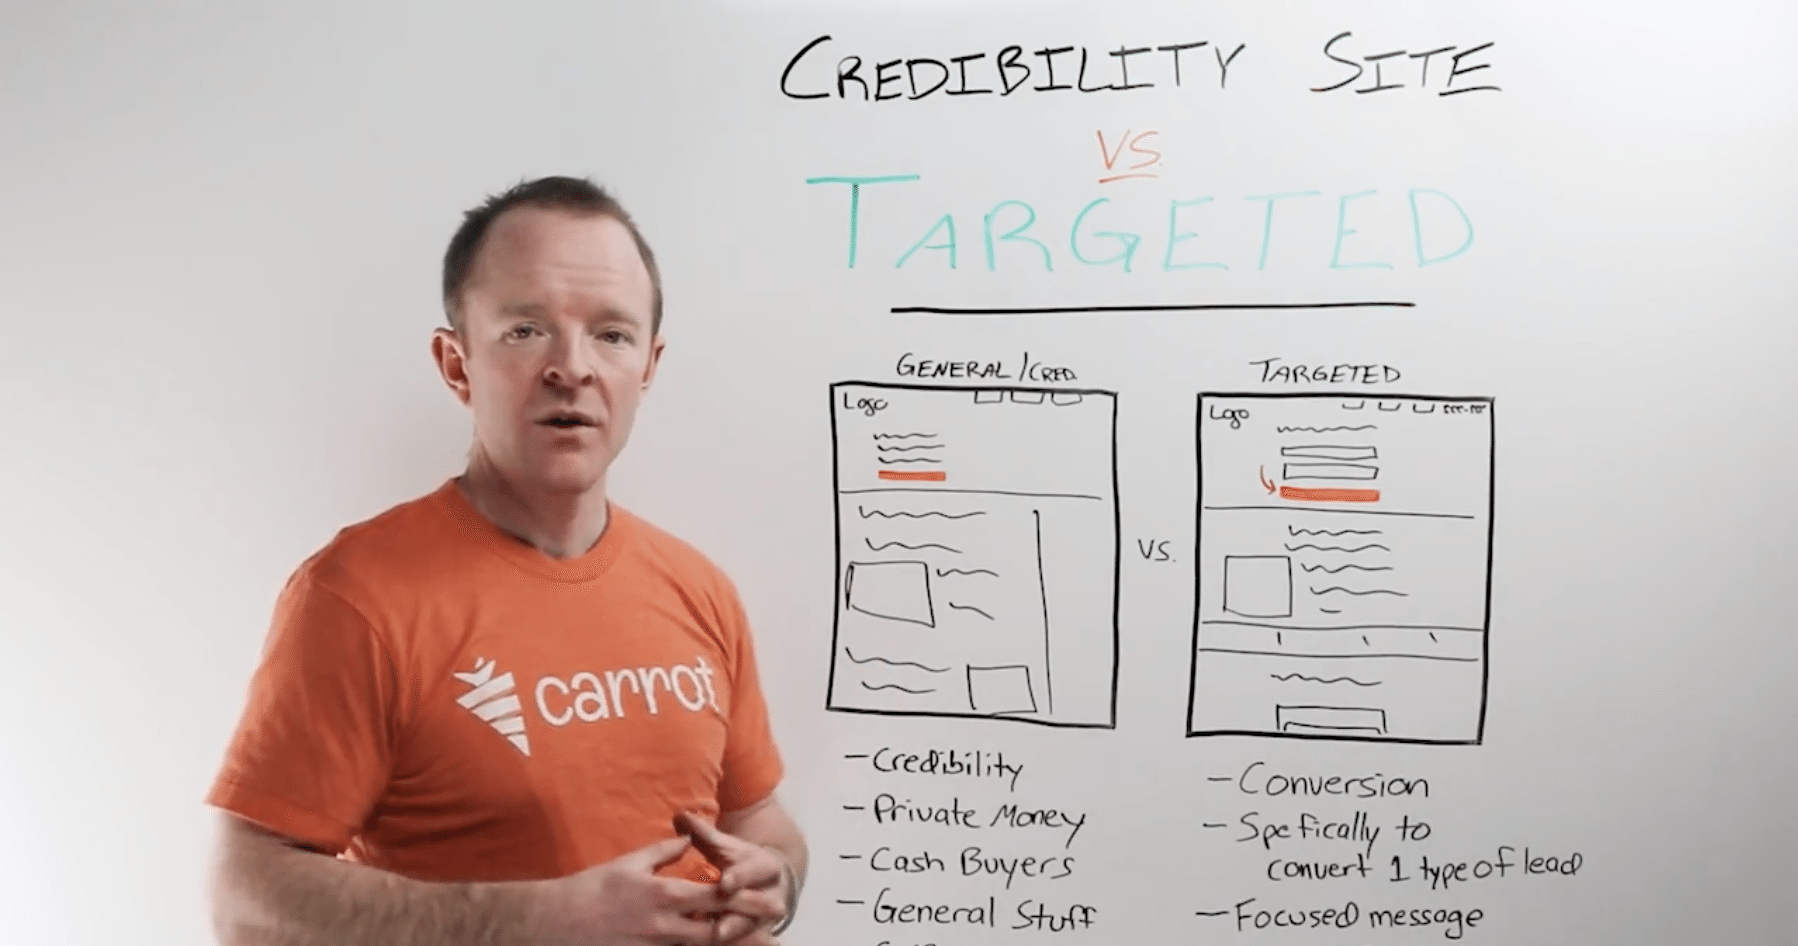 real estate websites- credibility vs targeted sites